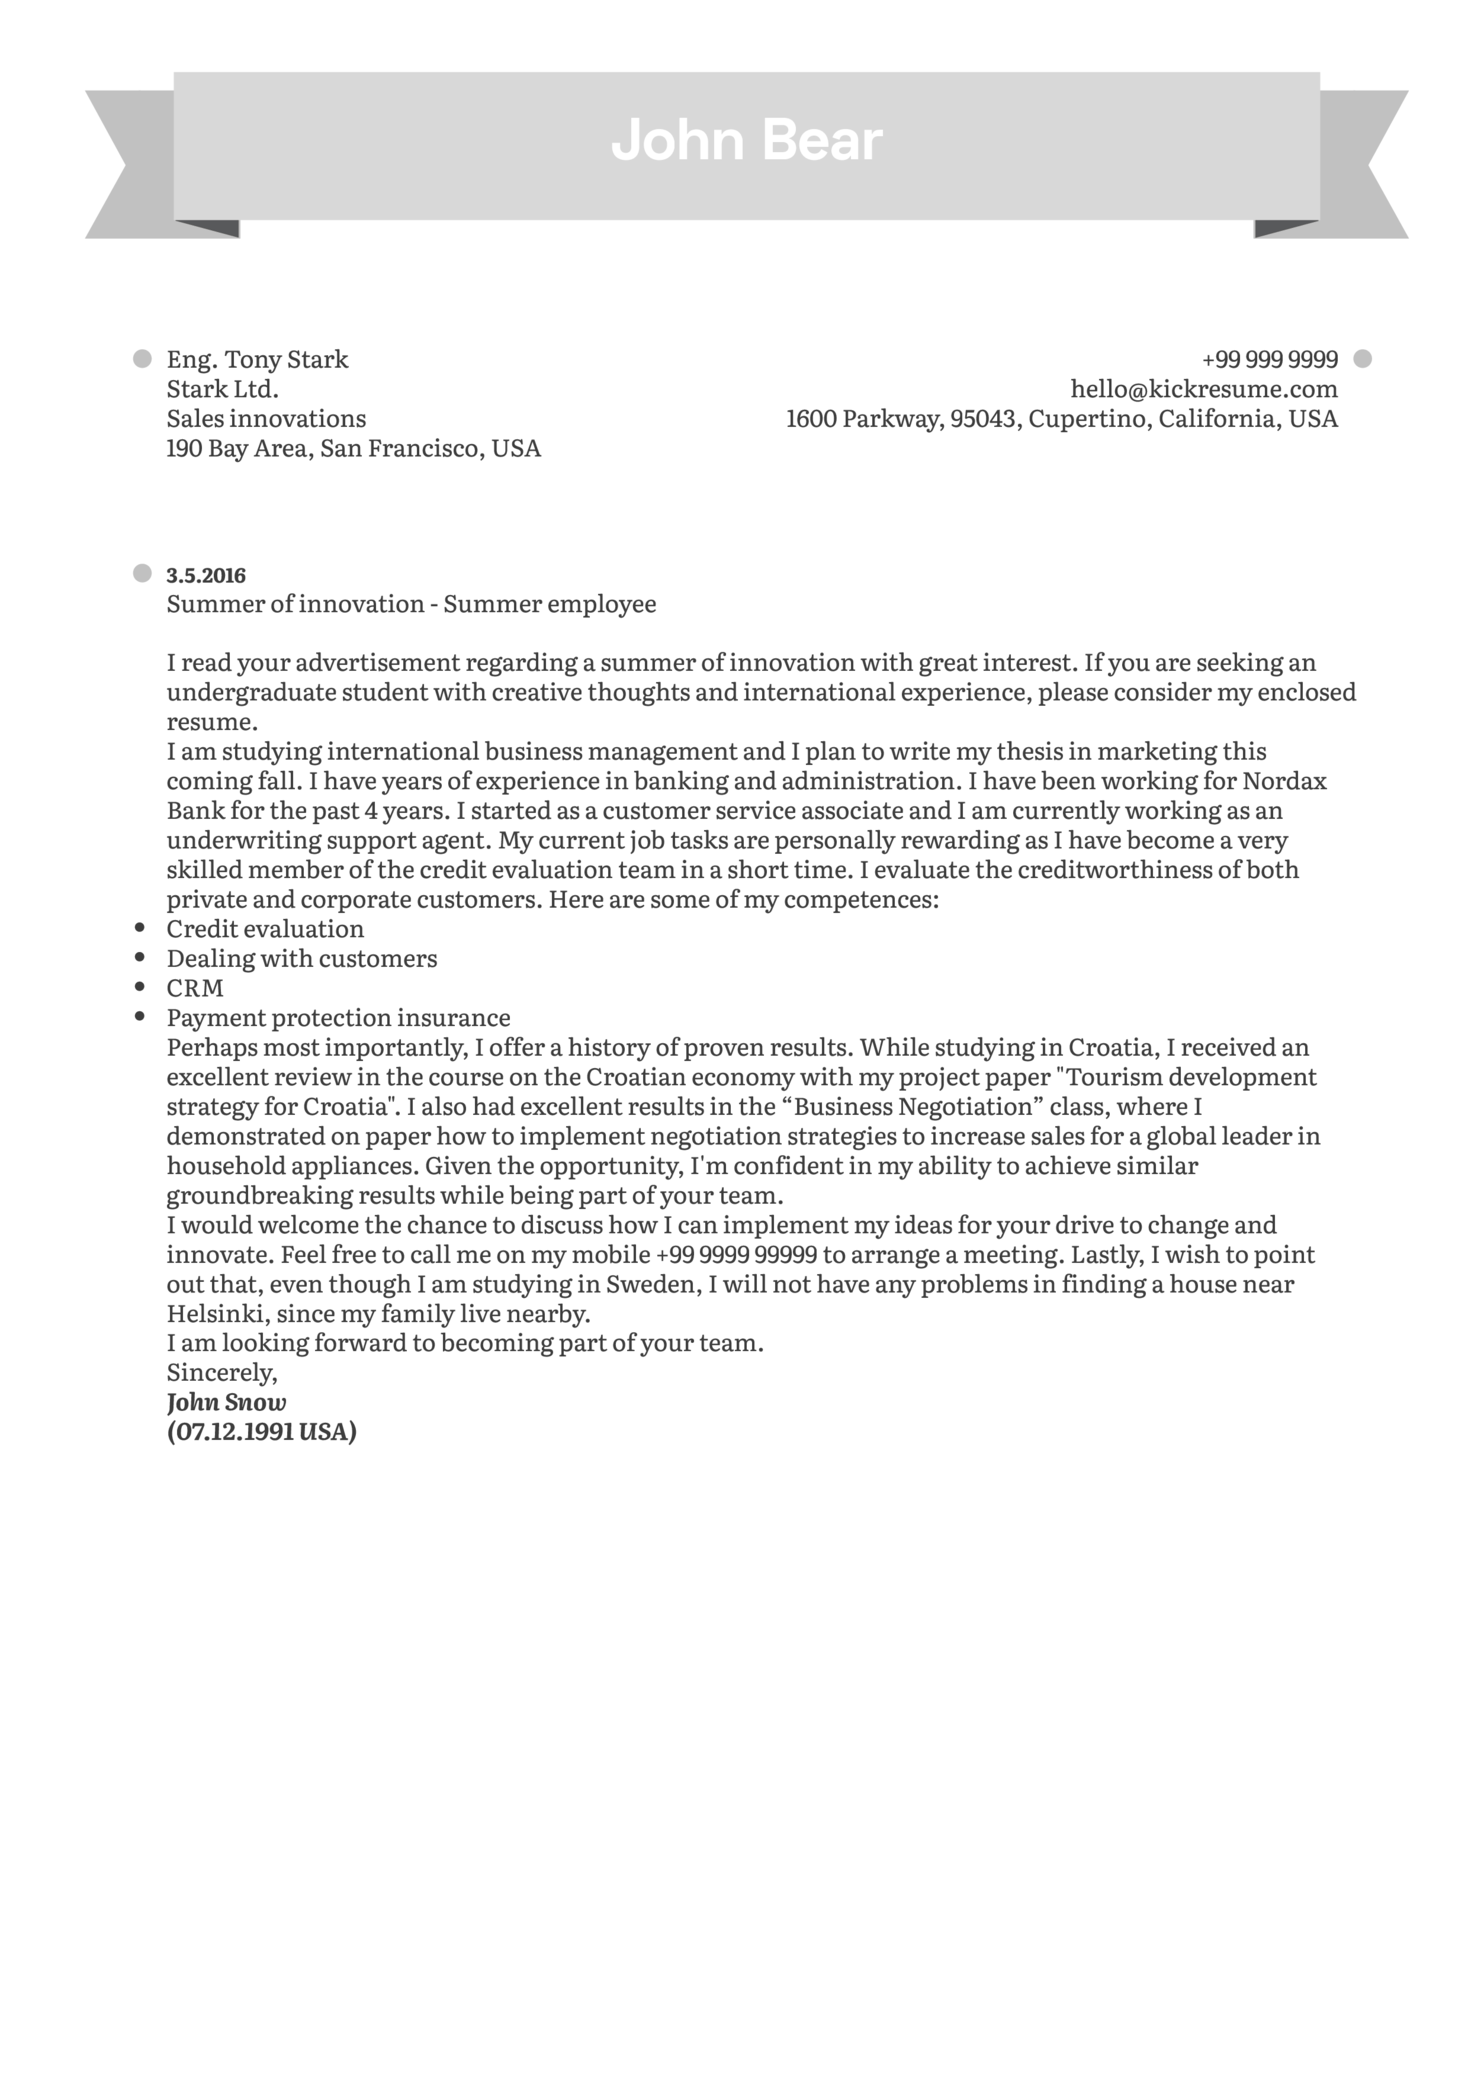 Cover Letter Examples by Real People: Student summer job cover ...